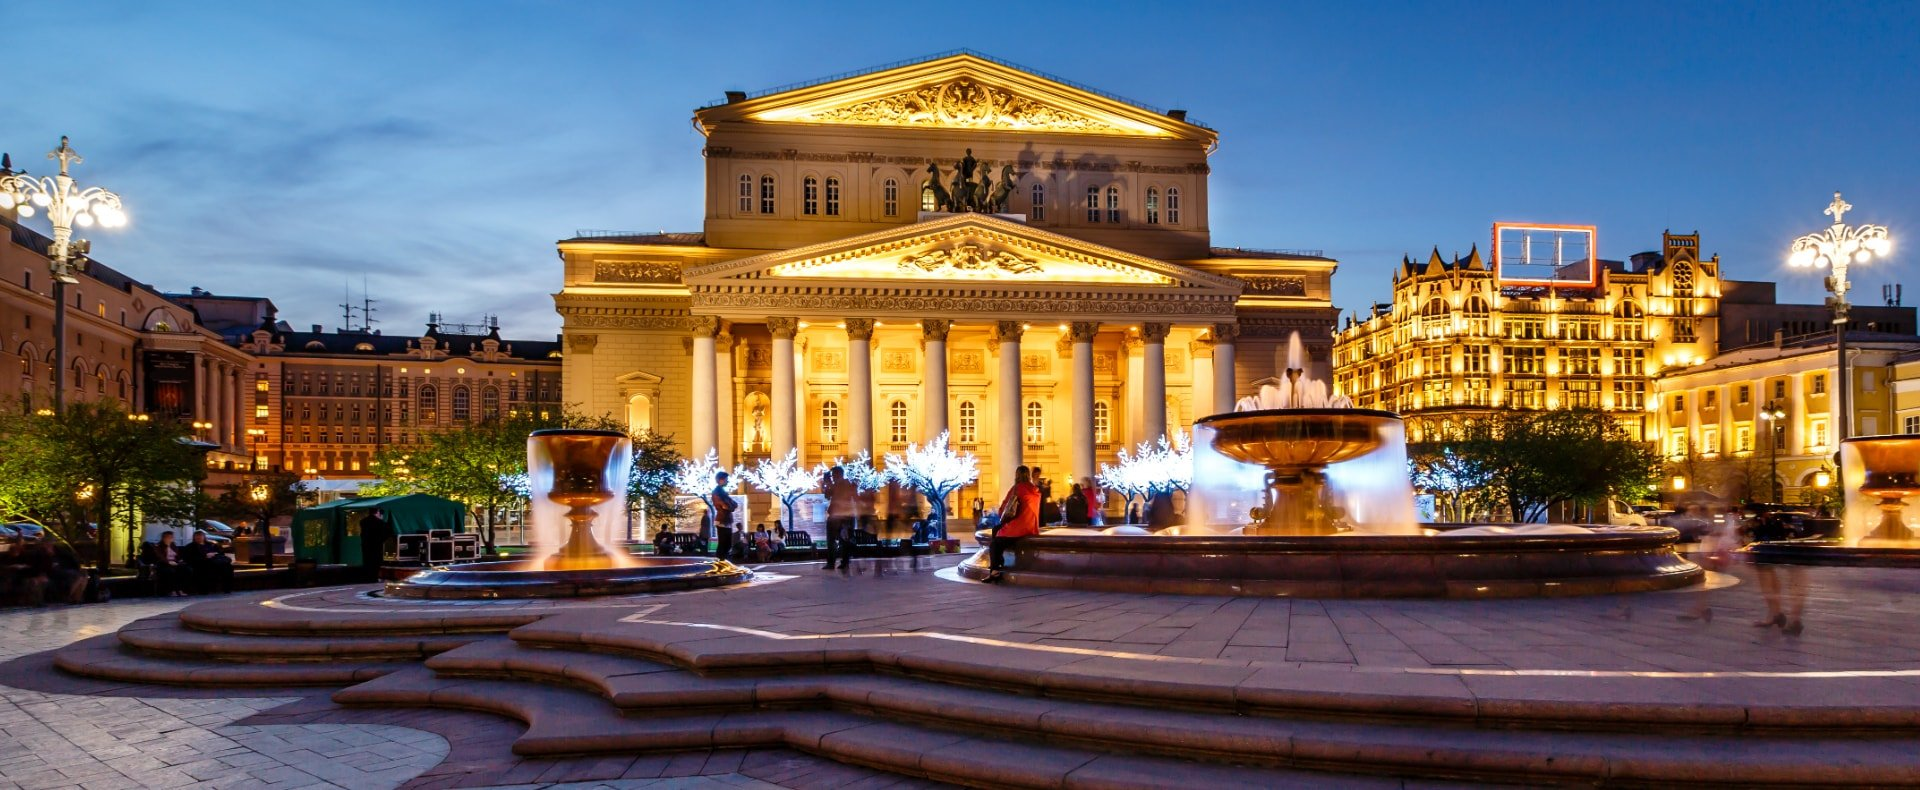 Bolshoi Theater, Moscow, Russia Gallery